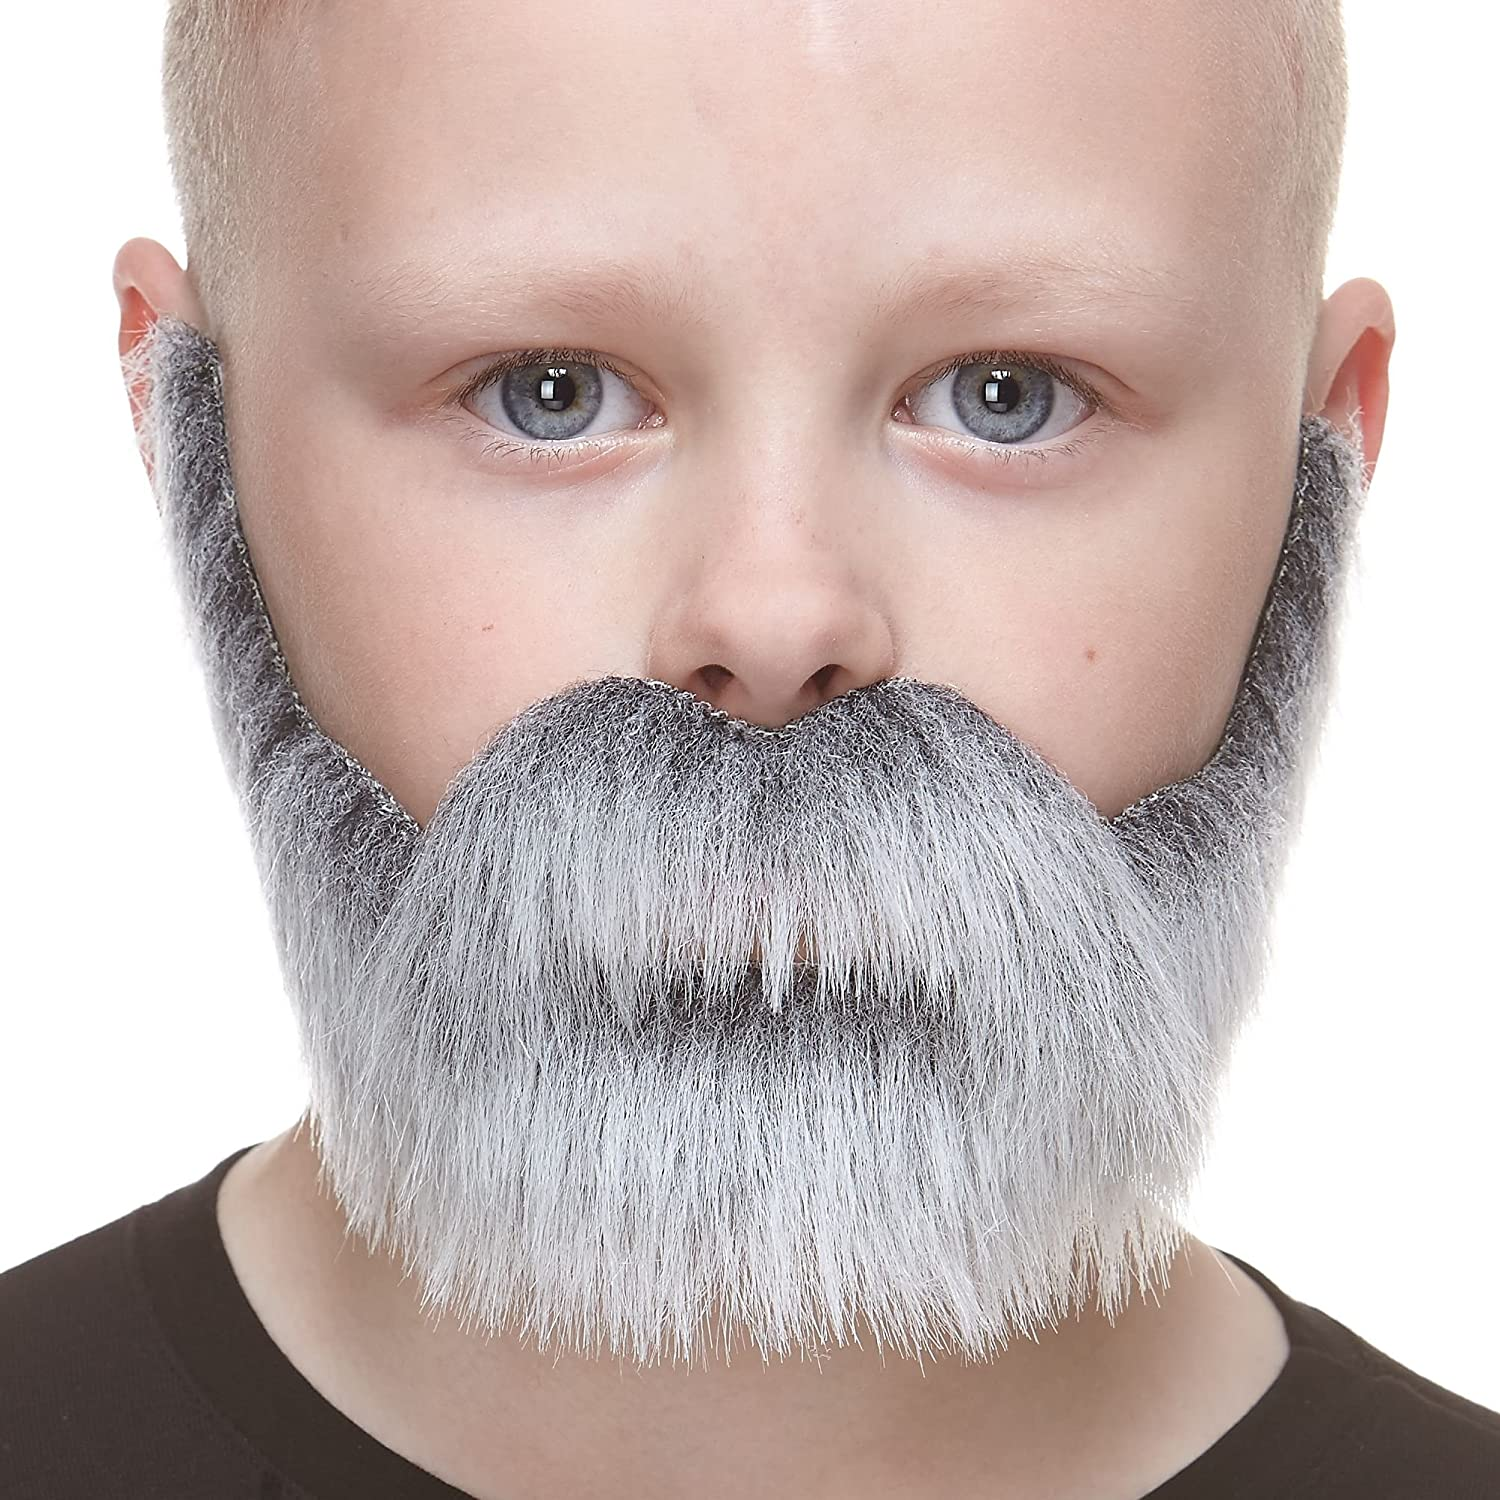 Mustaches Fake Beard, Self Adhesive, Small Nobleman False Facial Hair for Kids, Salt and Pepper Color